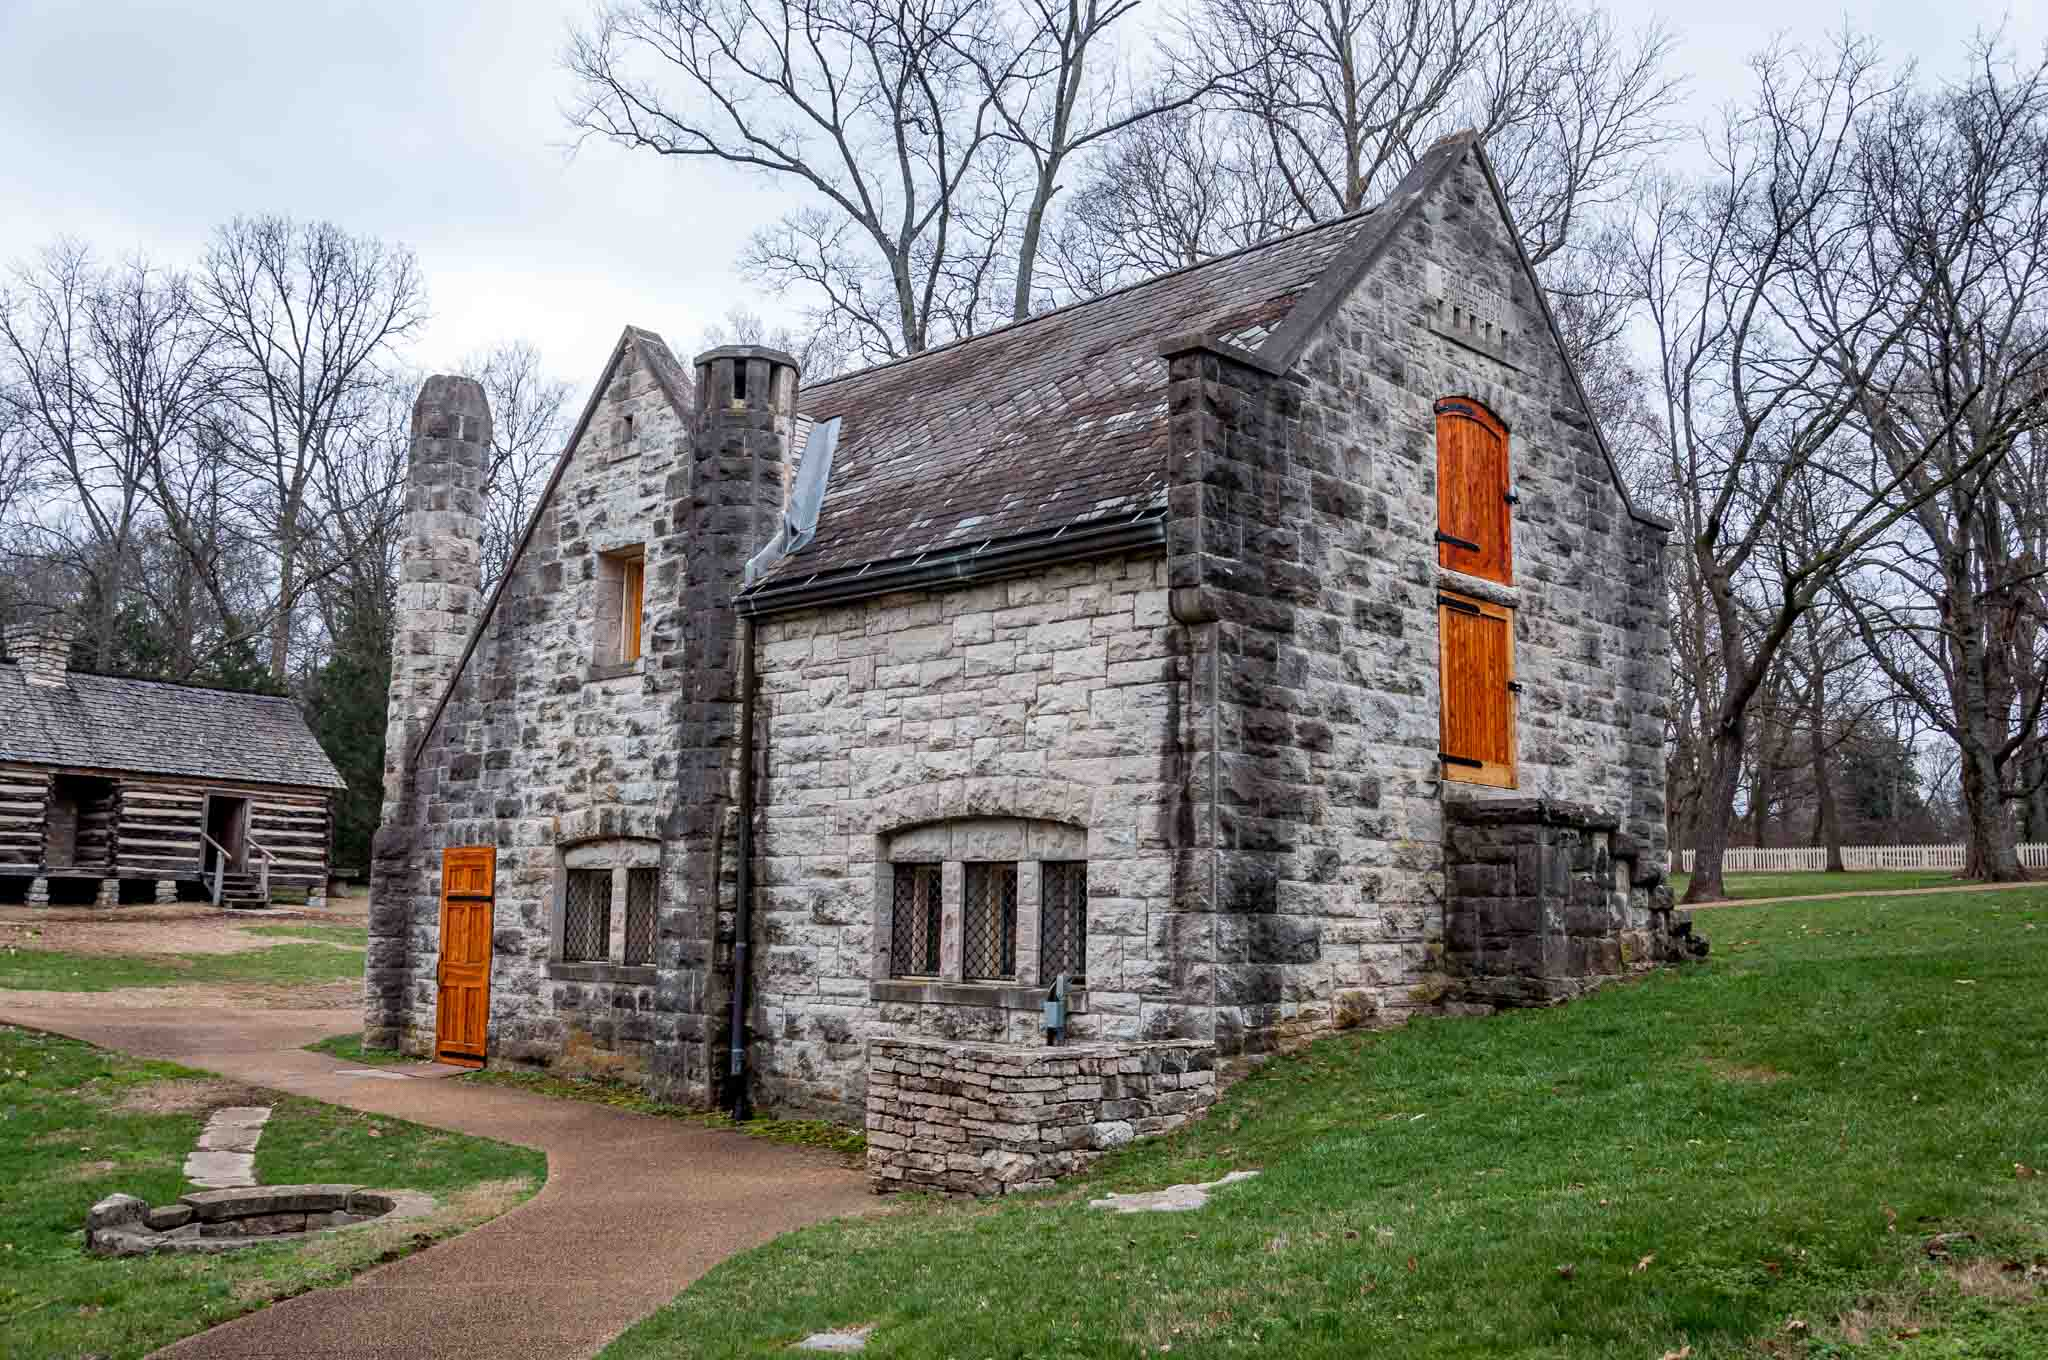 Stone building on a hill, the creamery on the Belle Meade plantation